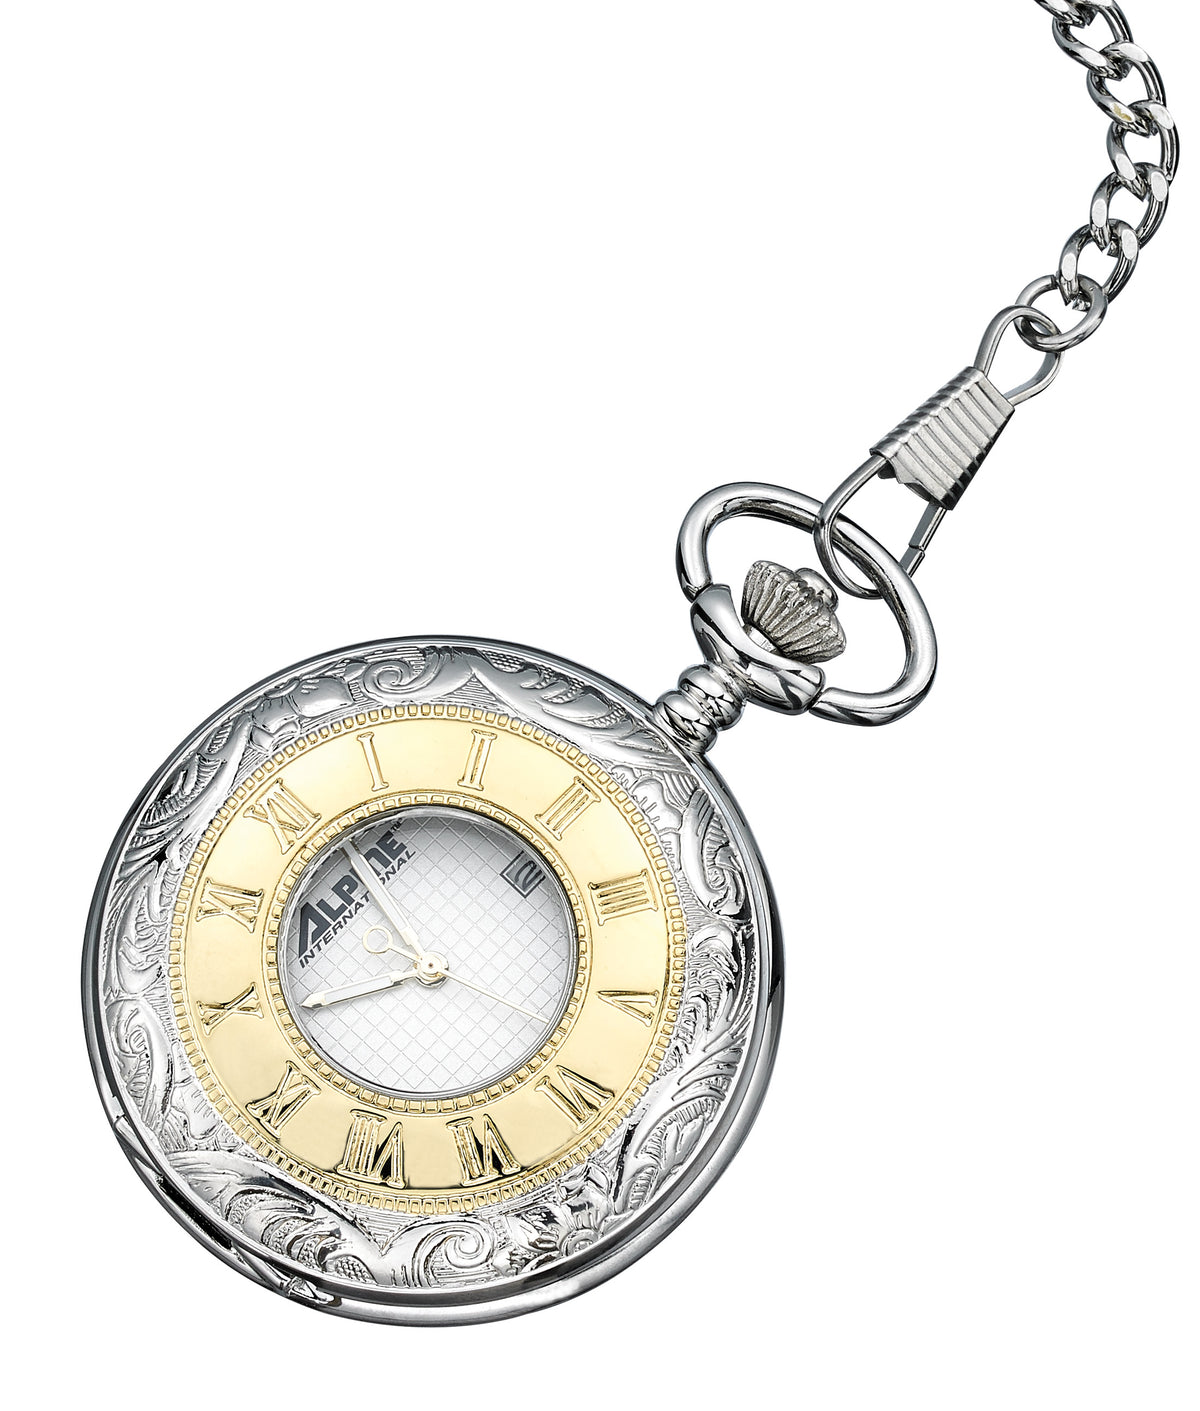 Alpine Quartz Pocket Watch - Two Tone